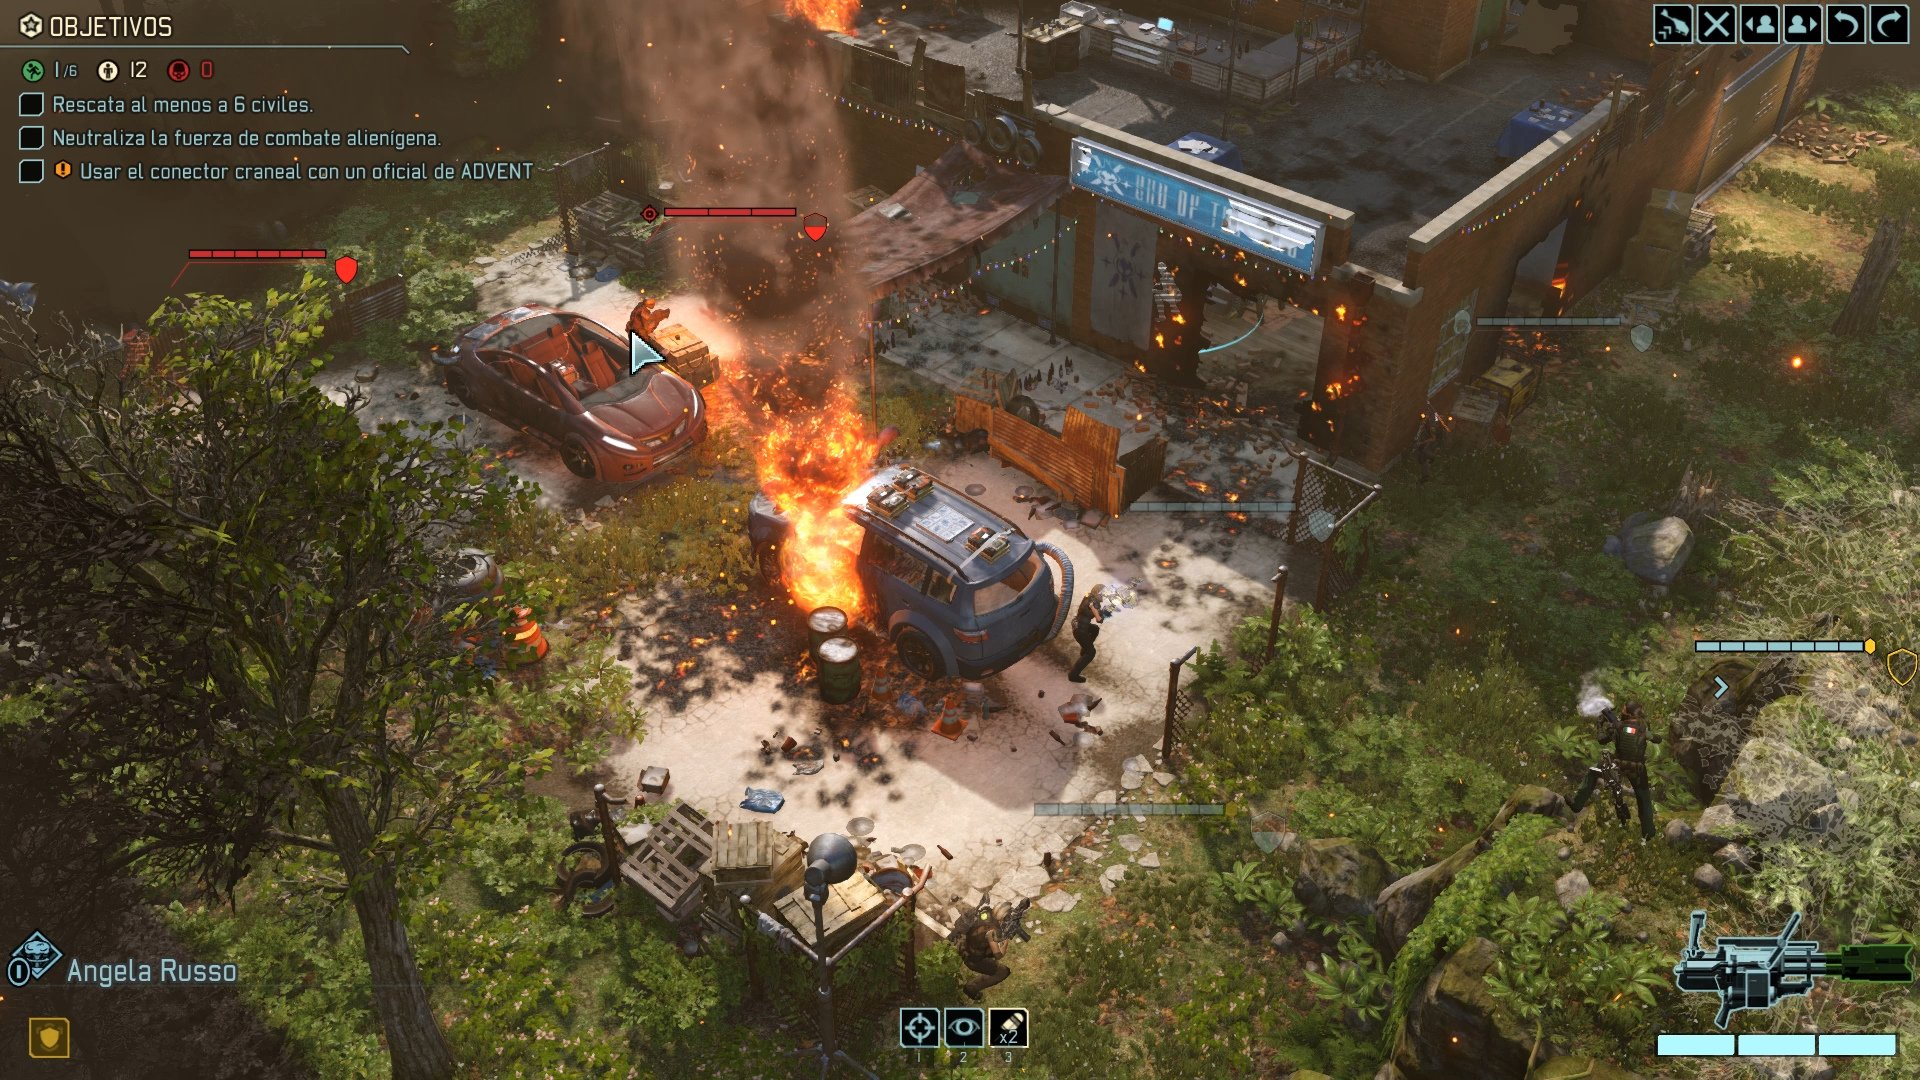 how to pass a turn in xcom2 on ps4